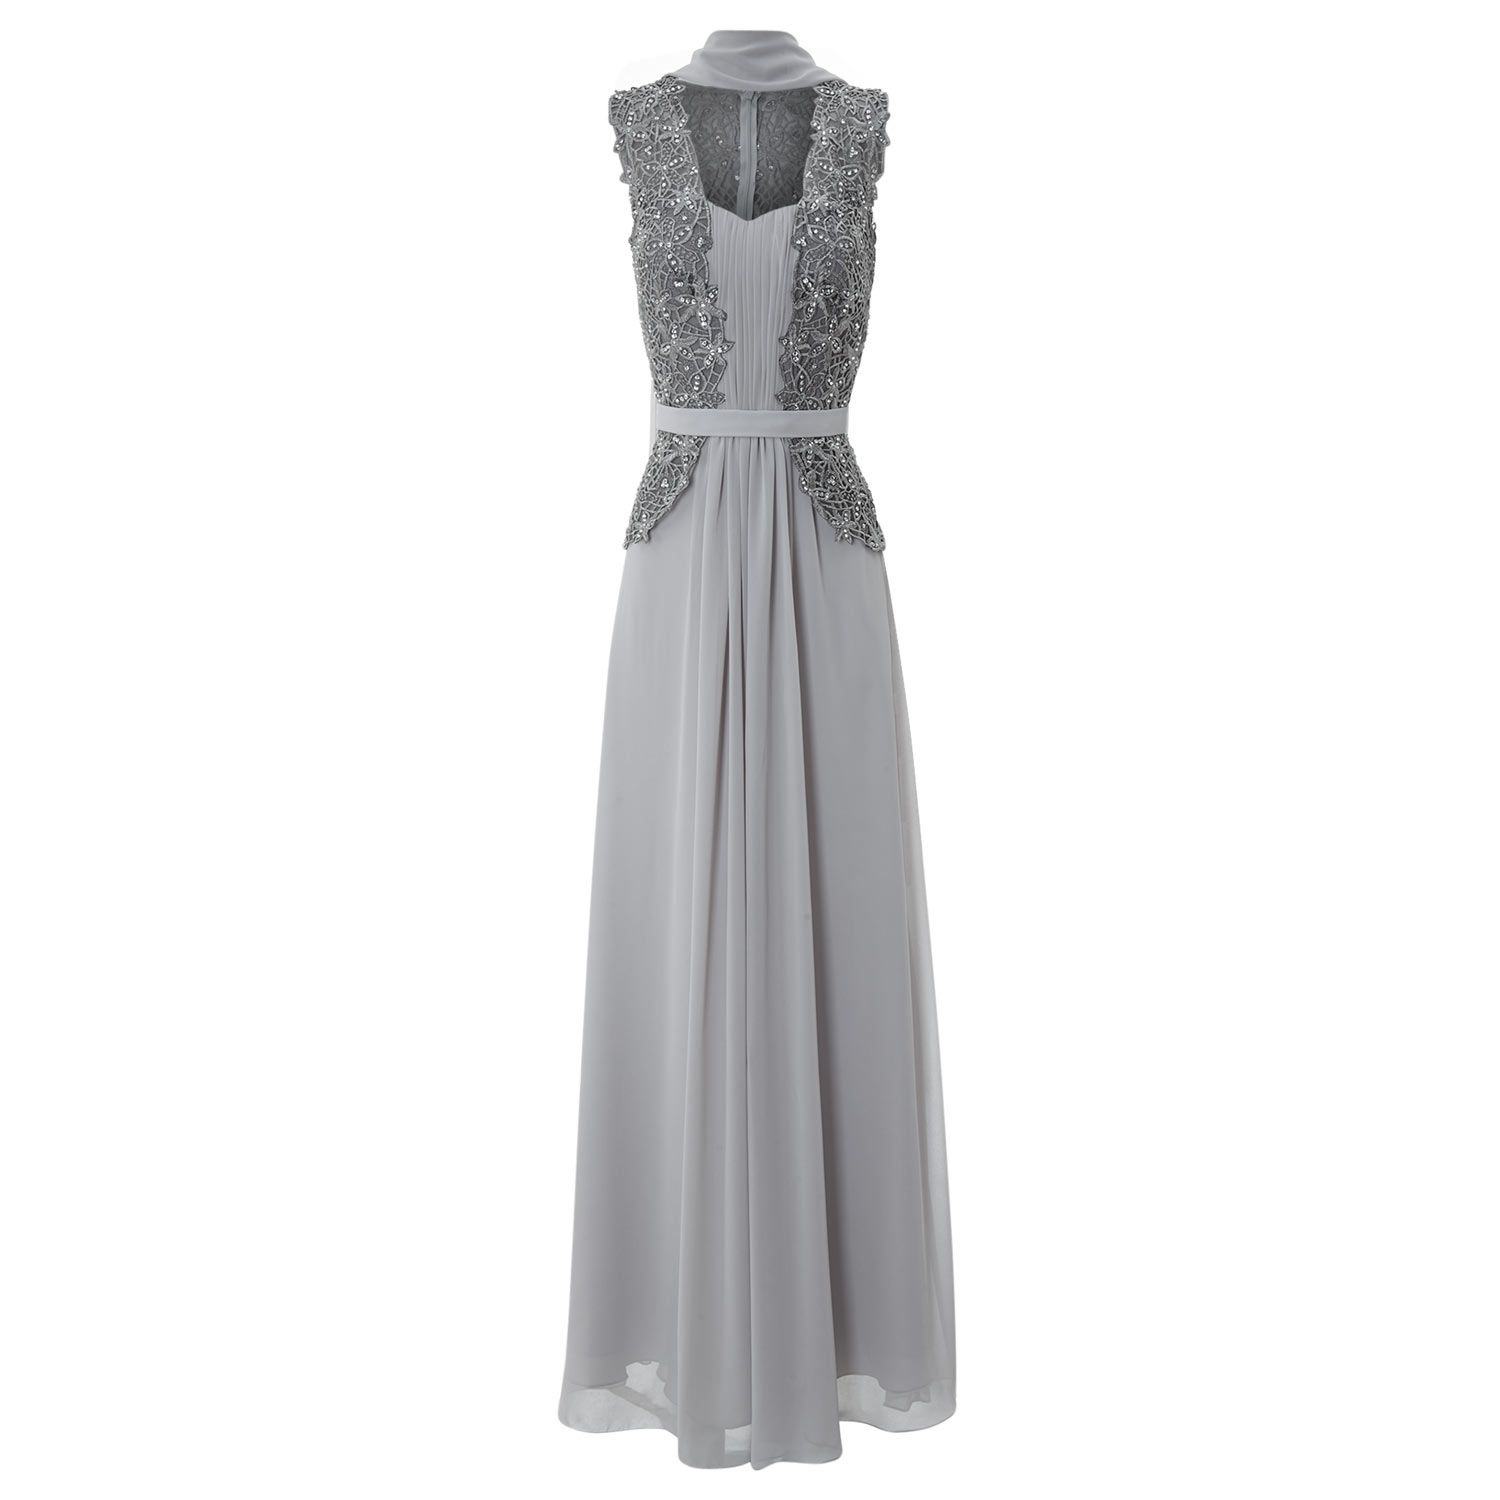 grey lace and chiffon dress for £119.99 #fabfind